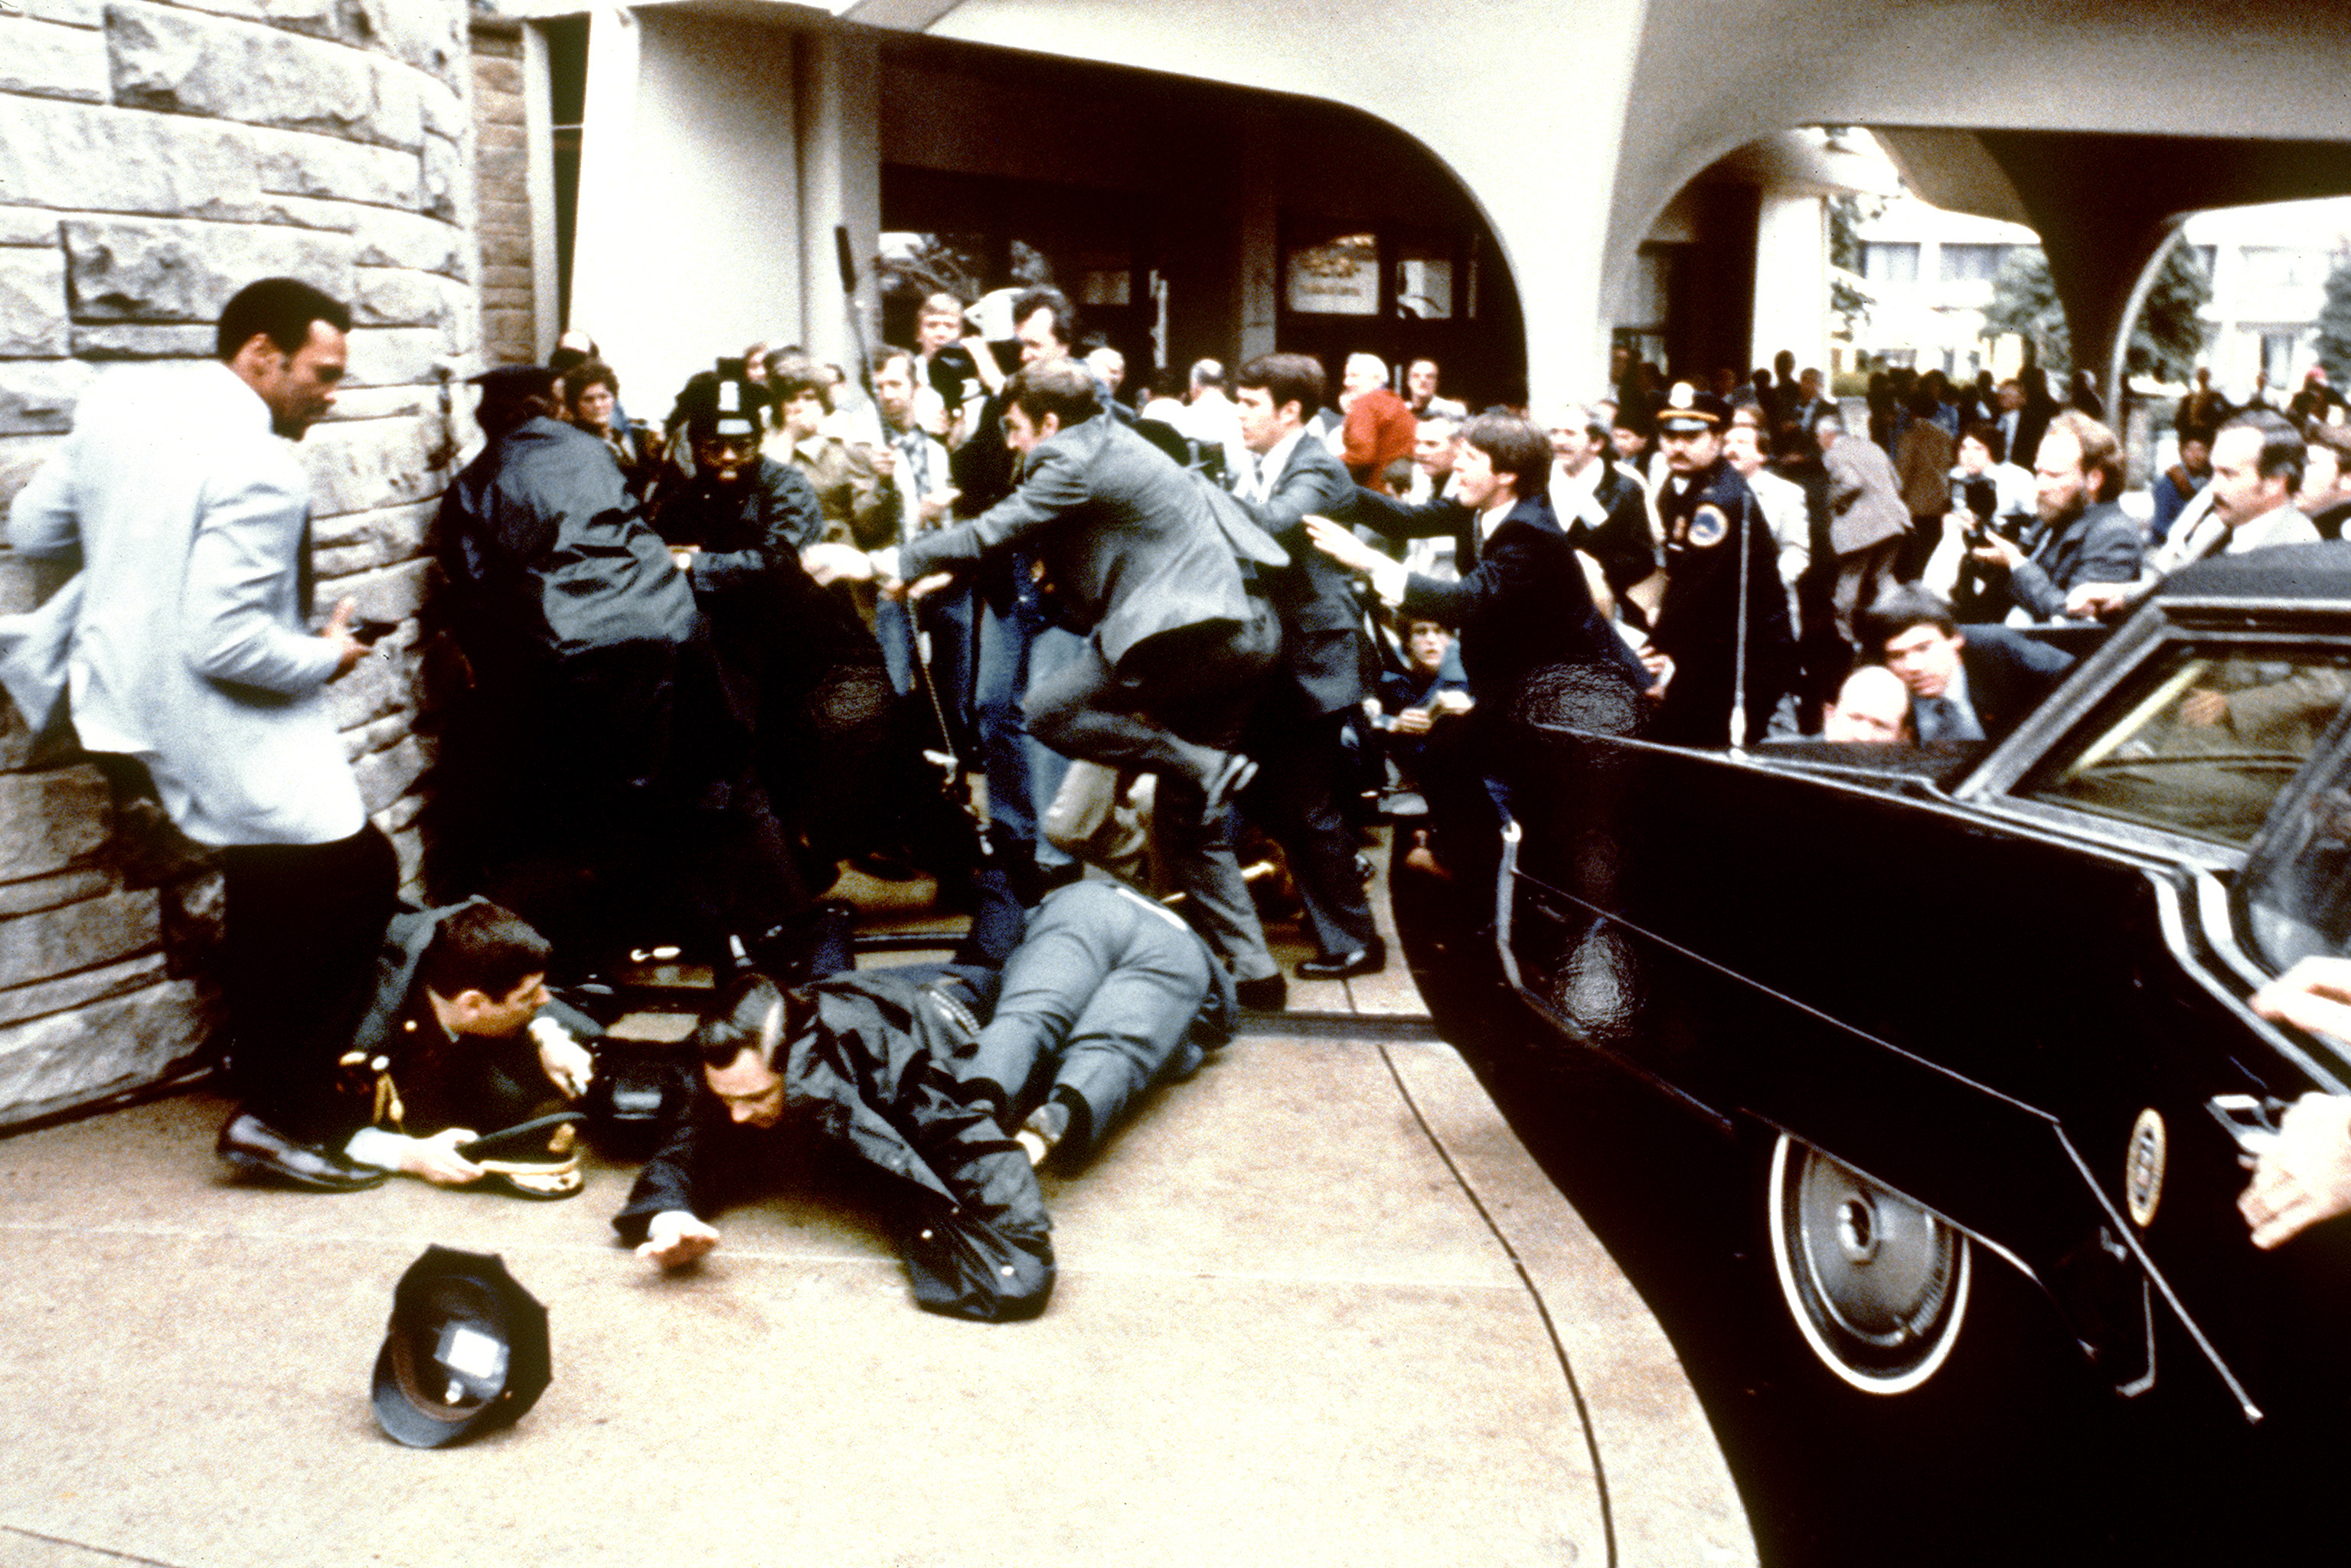 This photo taken by presidential photographer Mike Evens on March 30, 1981 shows police and Secret Service agents reacting during the assassination attempt on then US president Ronald Reagan, after a conference outside the Hilton Hotel in Washington, D.C.. Reagan was hit by one of six shots fired by John Hinckley, who also seriously injured press secretary James Brady (just behind the car). Reagan was hit in the chest and was hospitalized for 12 days. Hinckley was aquitted 21 June 1982 after a jury found him mentally unstable. Photo credit: MIKE EVENS/AFP/Getty Images